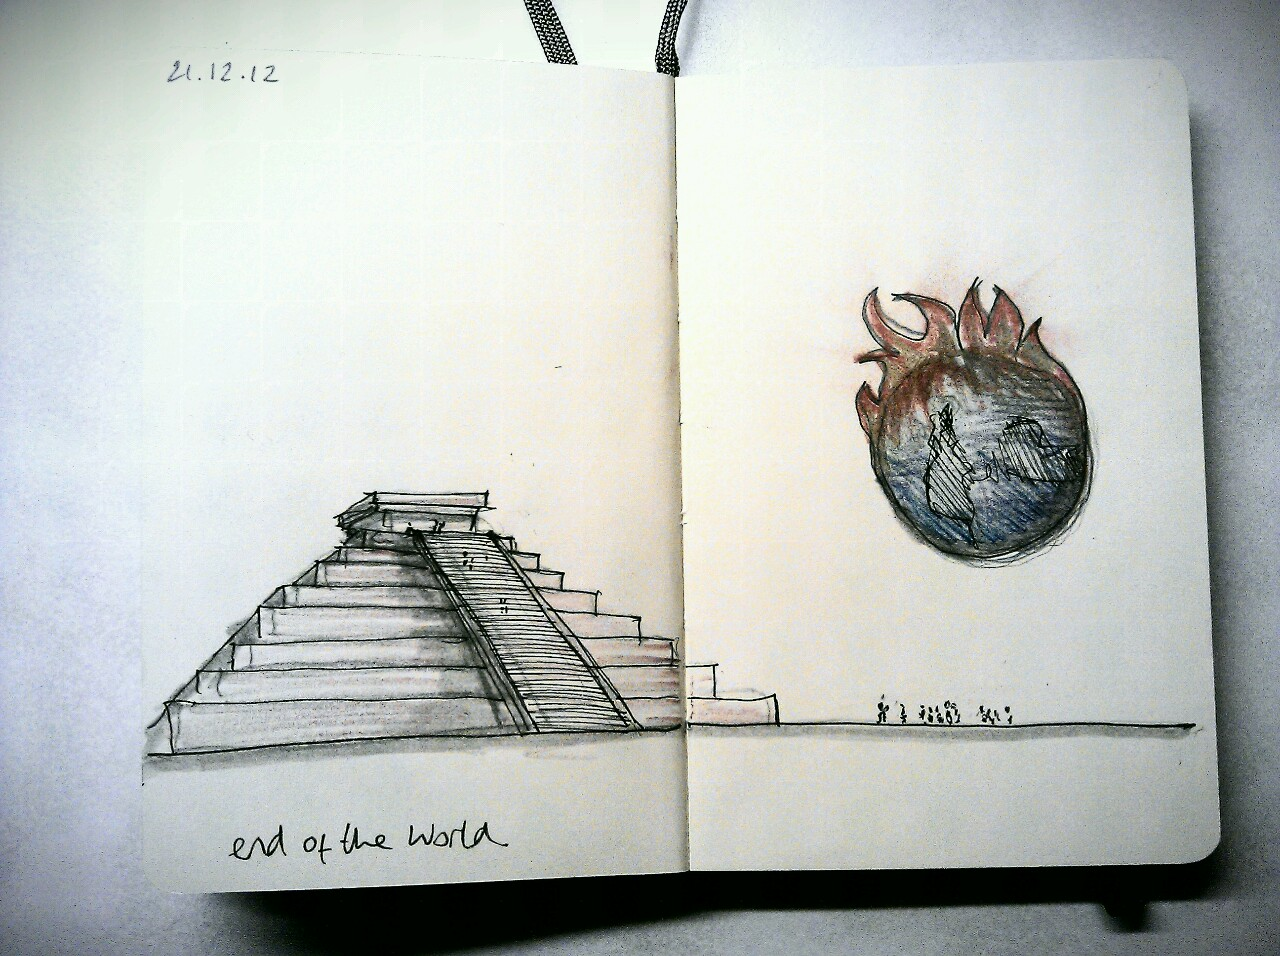 365 drawings later … day 325 … end of the world